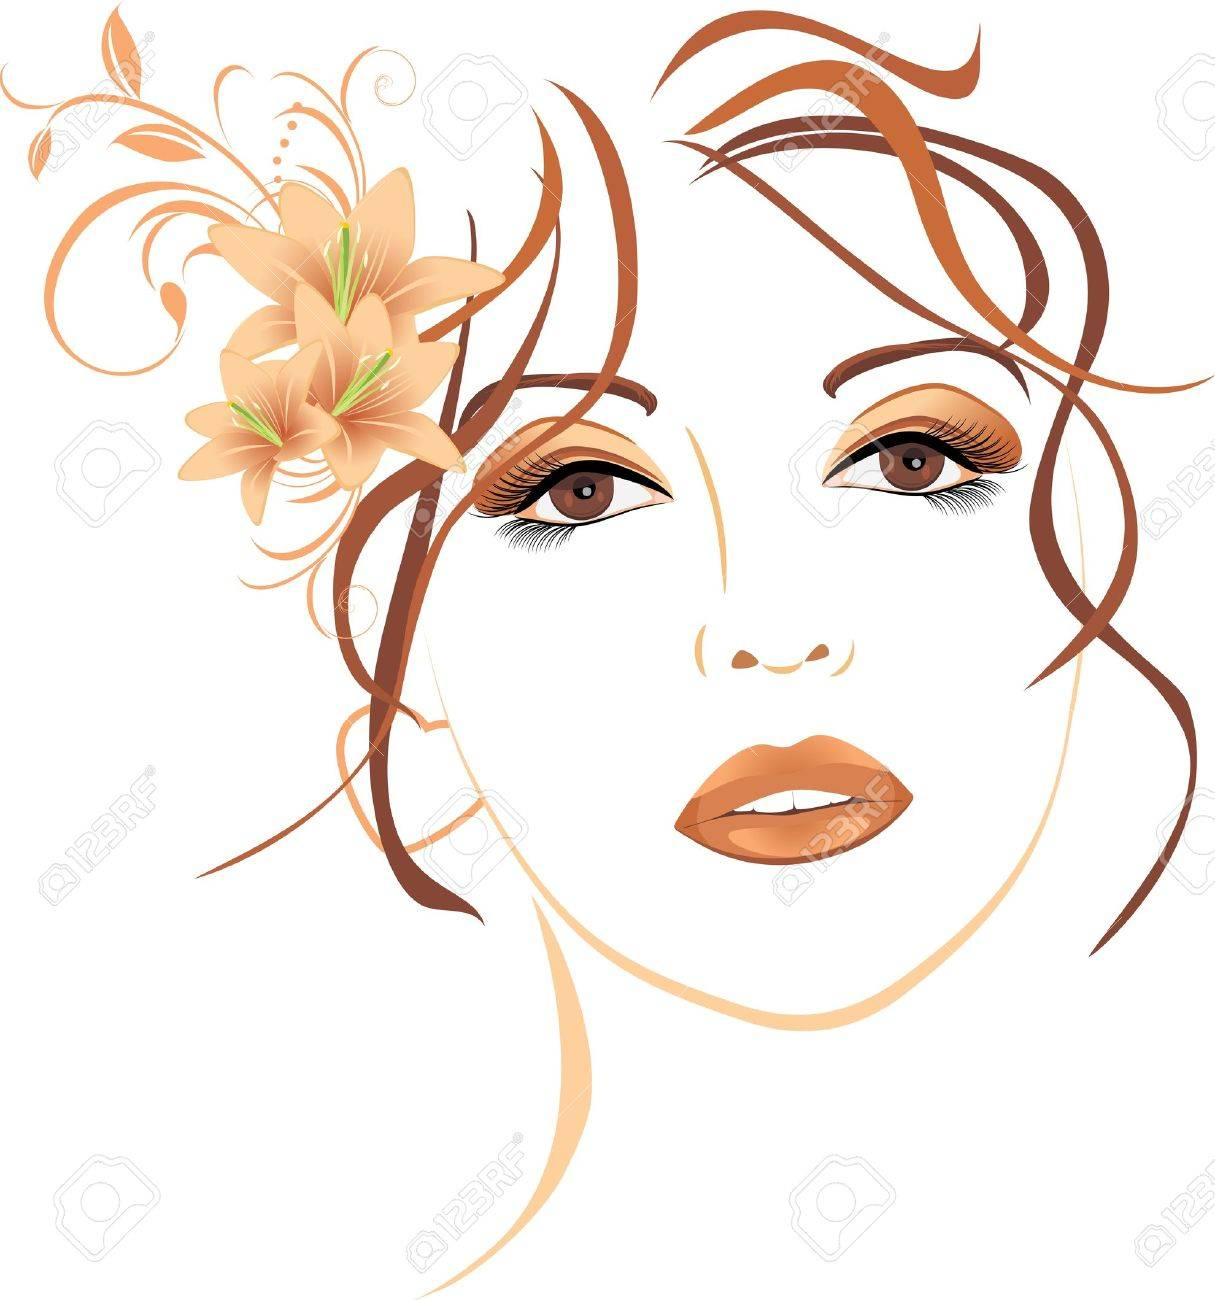 Beauty clipart 8 » Clipart Station.